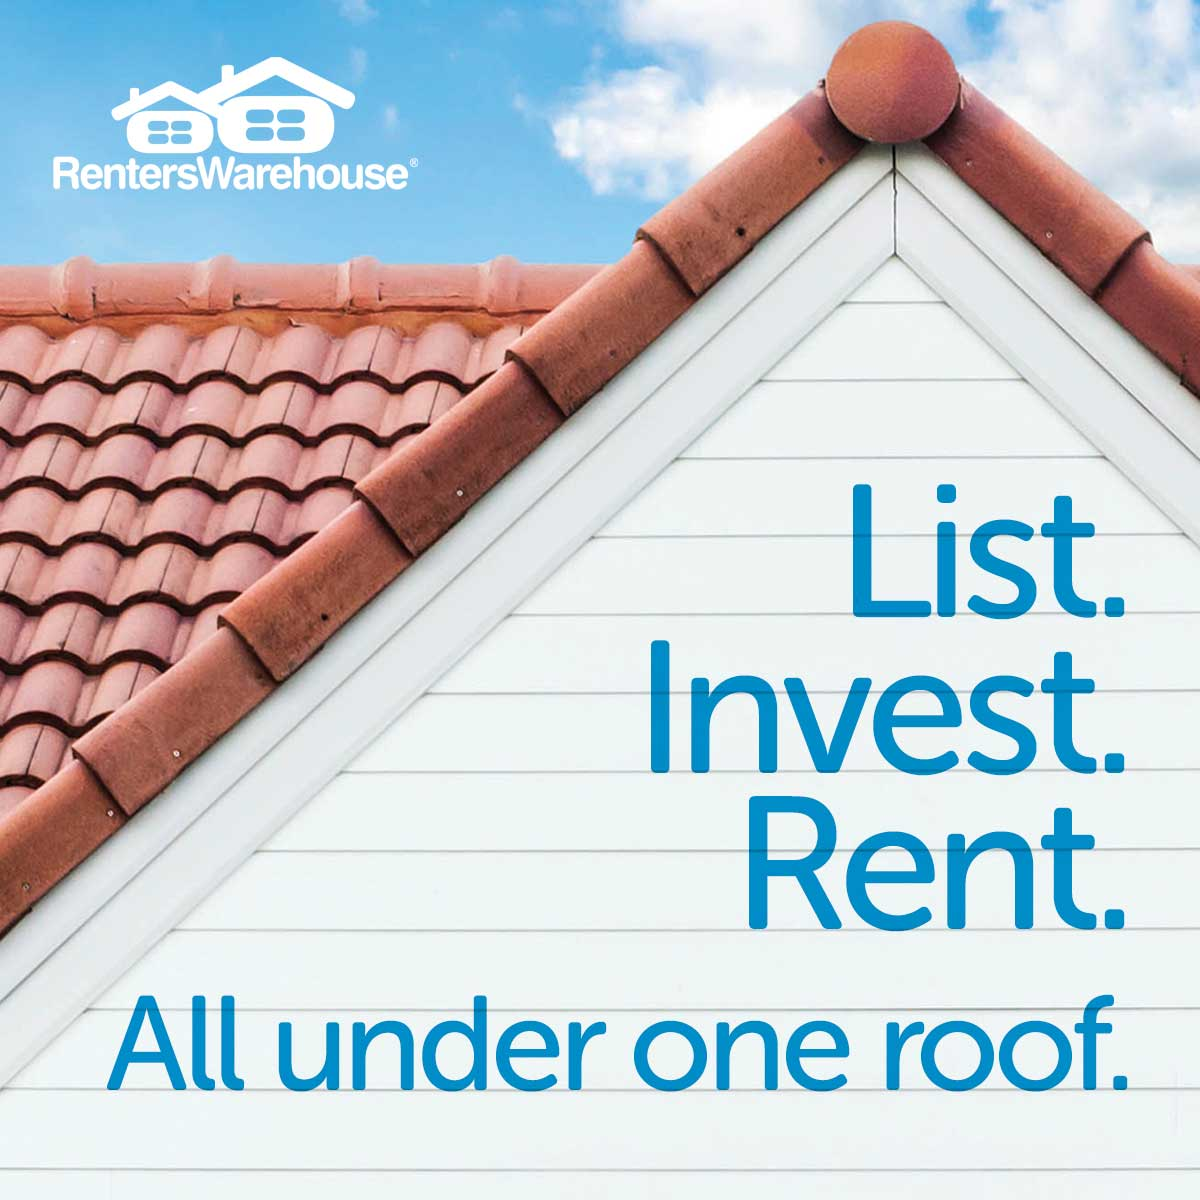 Renters Warehouse - Single Family Rental Investment